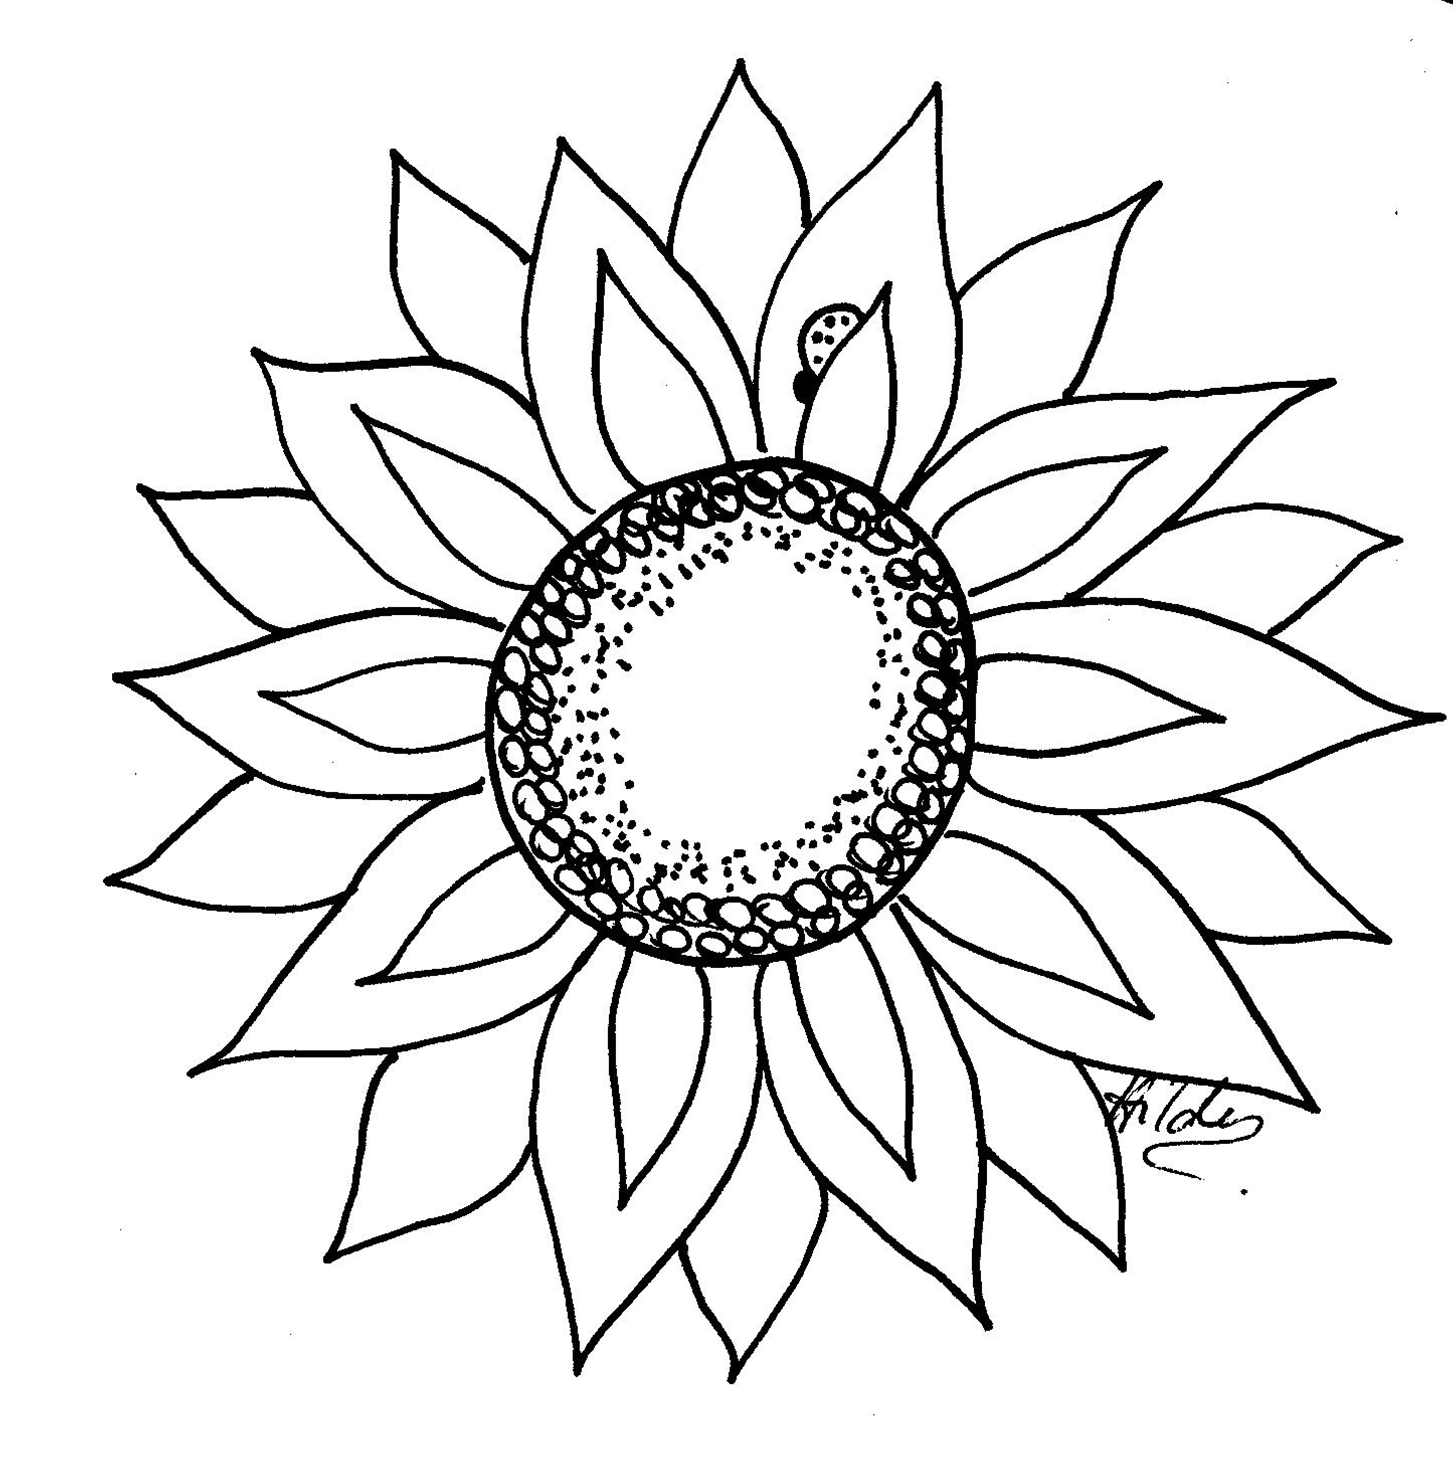 Free Sunflower Template, Download Free Clip Art, Free Clip Art On - Free Printable Sunflower Template